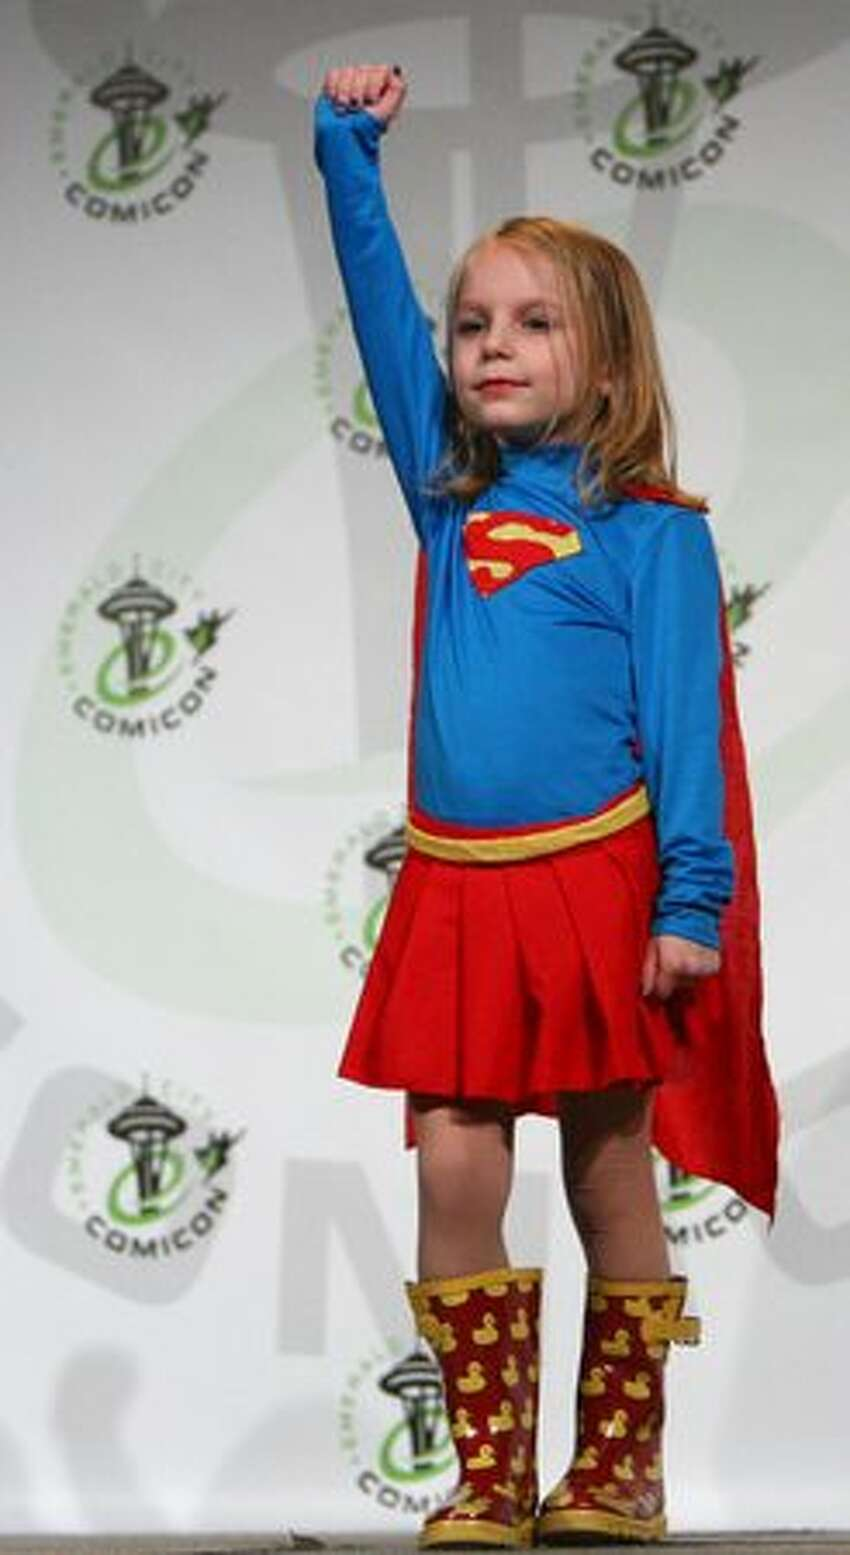 Macayla Reeves, 4, takes flight onstage during the Emerald City Comicon Masquerade costume competition.